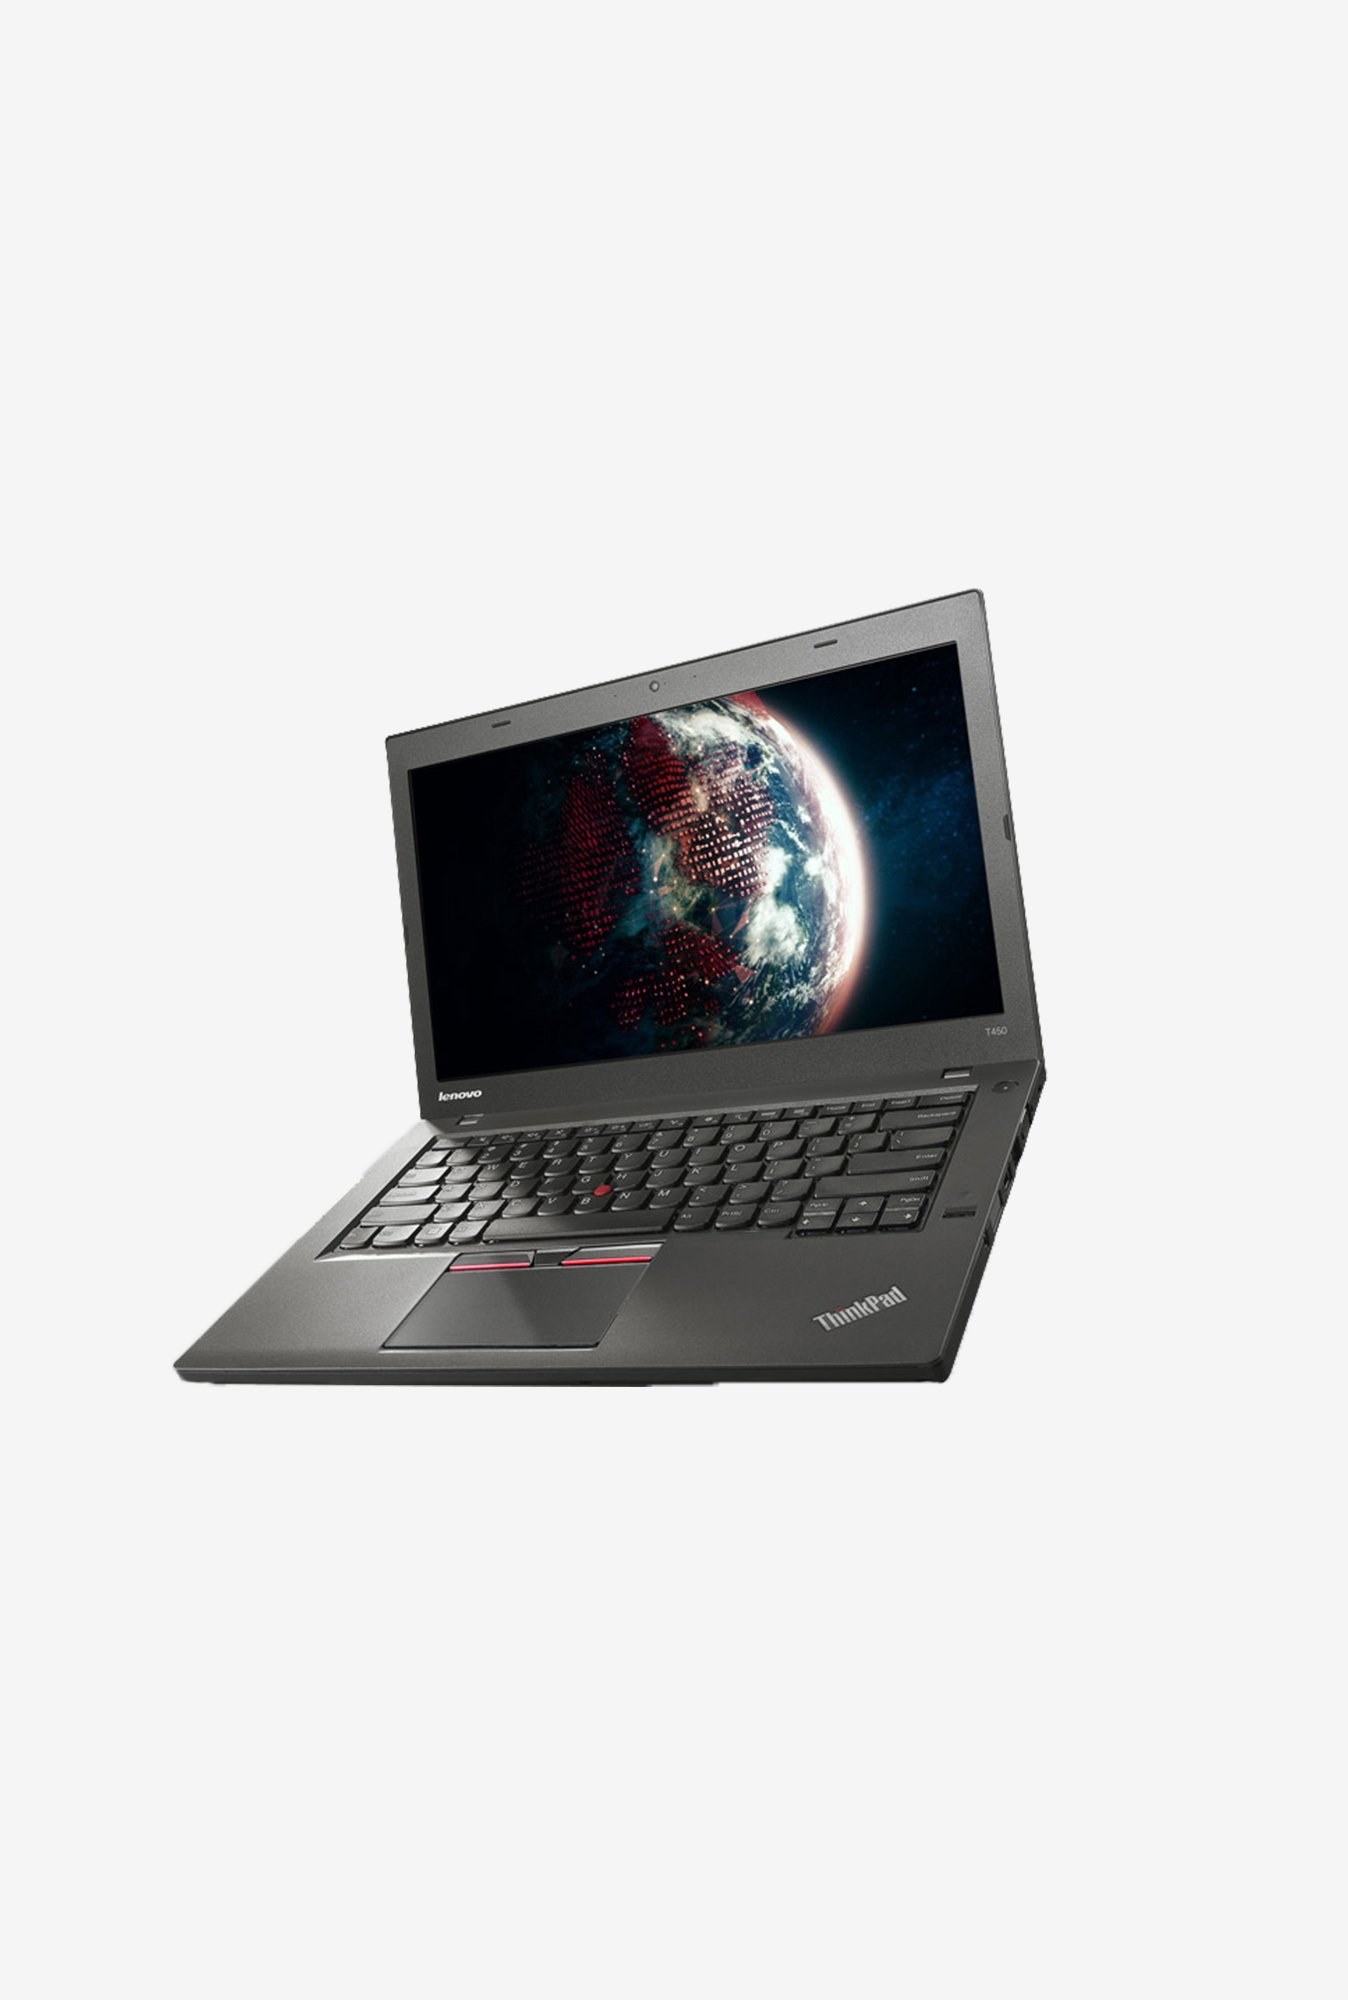 Lenovo ThinkPad T450 35.56cm Laptop (Intel i5, 500GB) Black